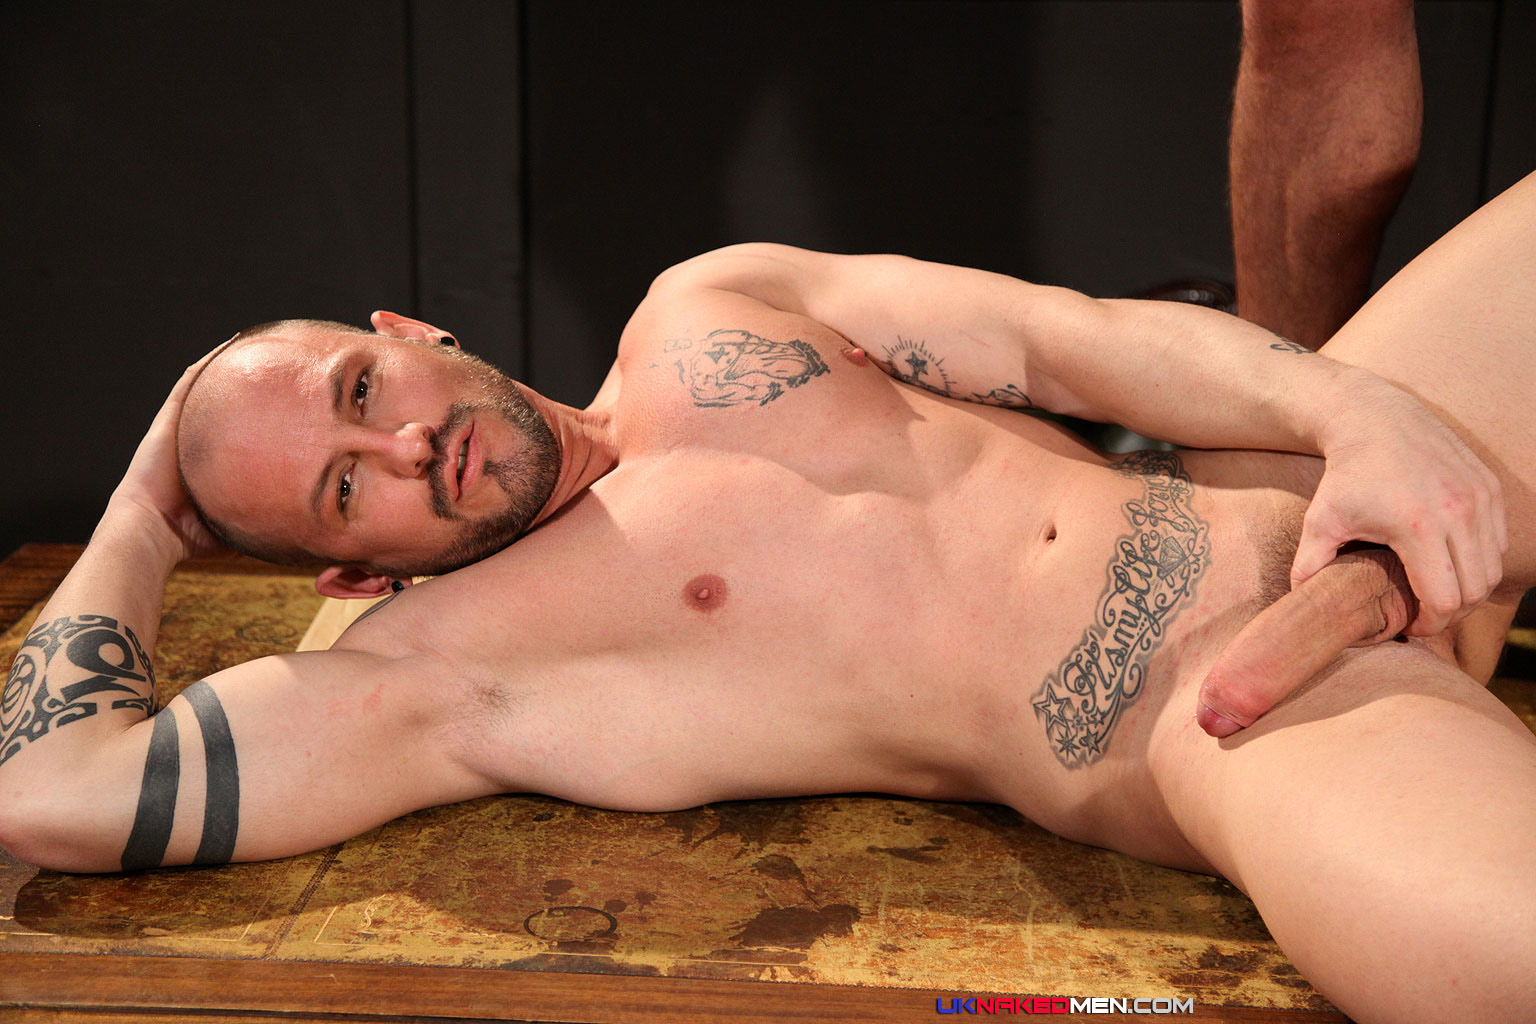 Are jessy ares max duran and confirm